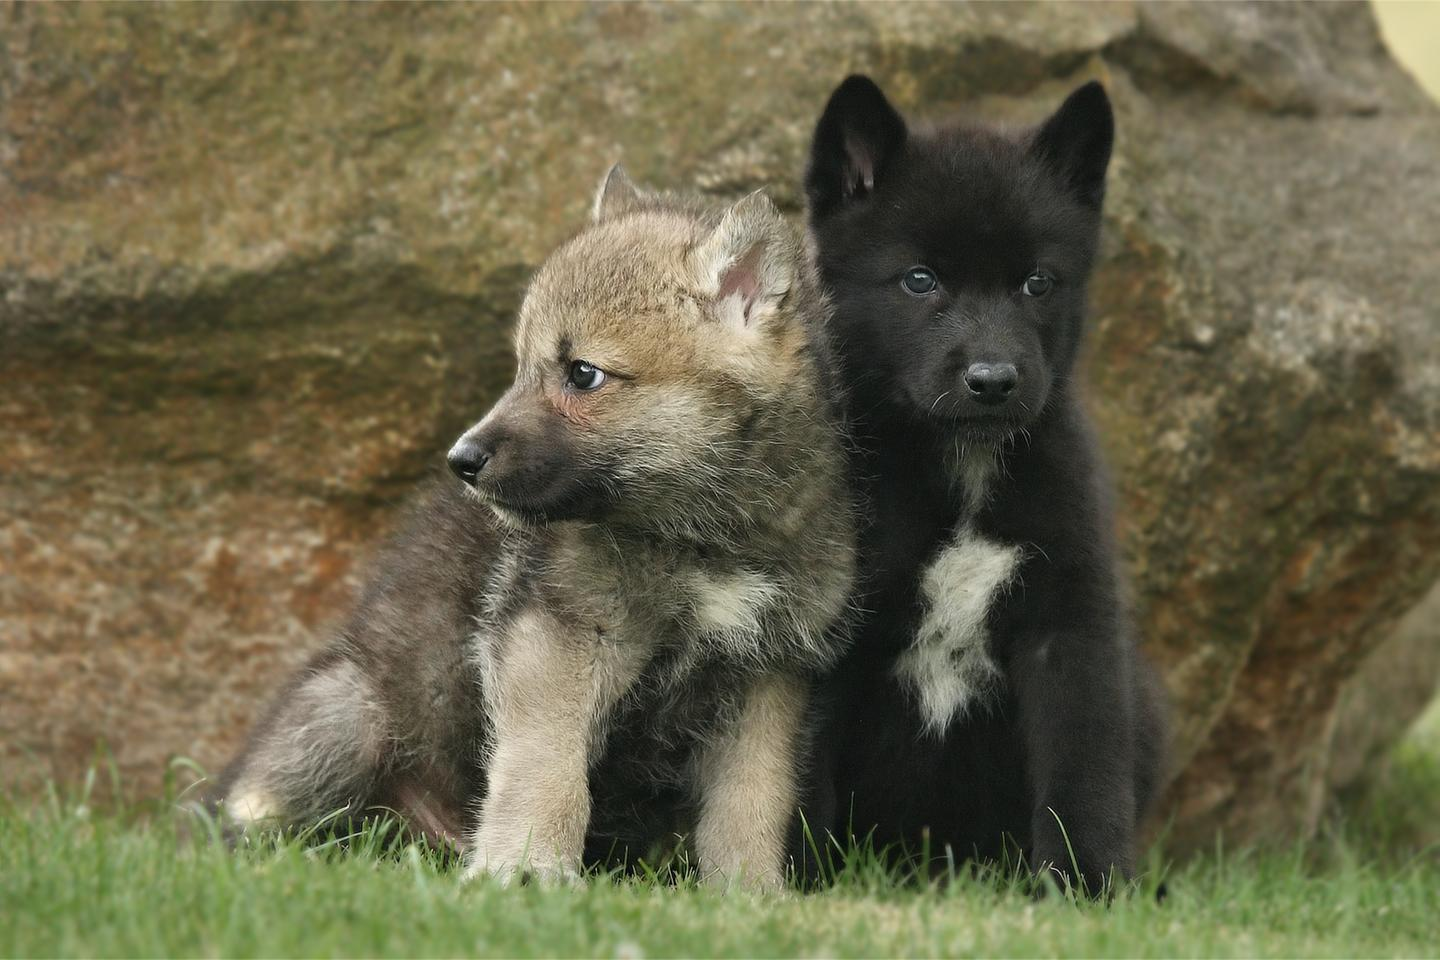 Scientists were left with goosebumps after making the unexpected discovery that some wolf puppies can naturally fetch an object